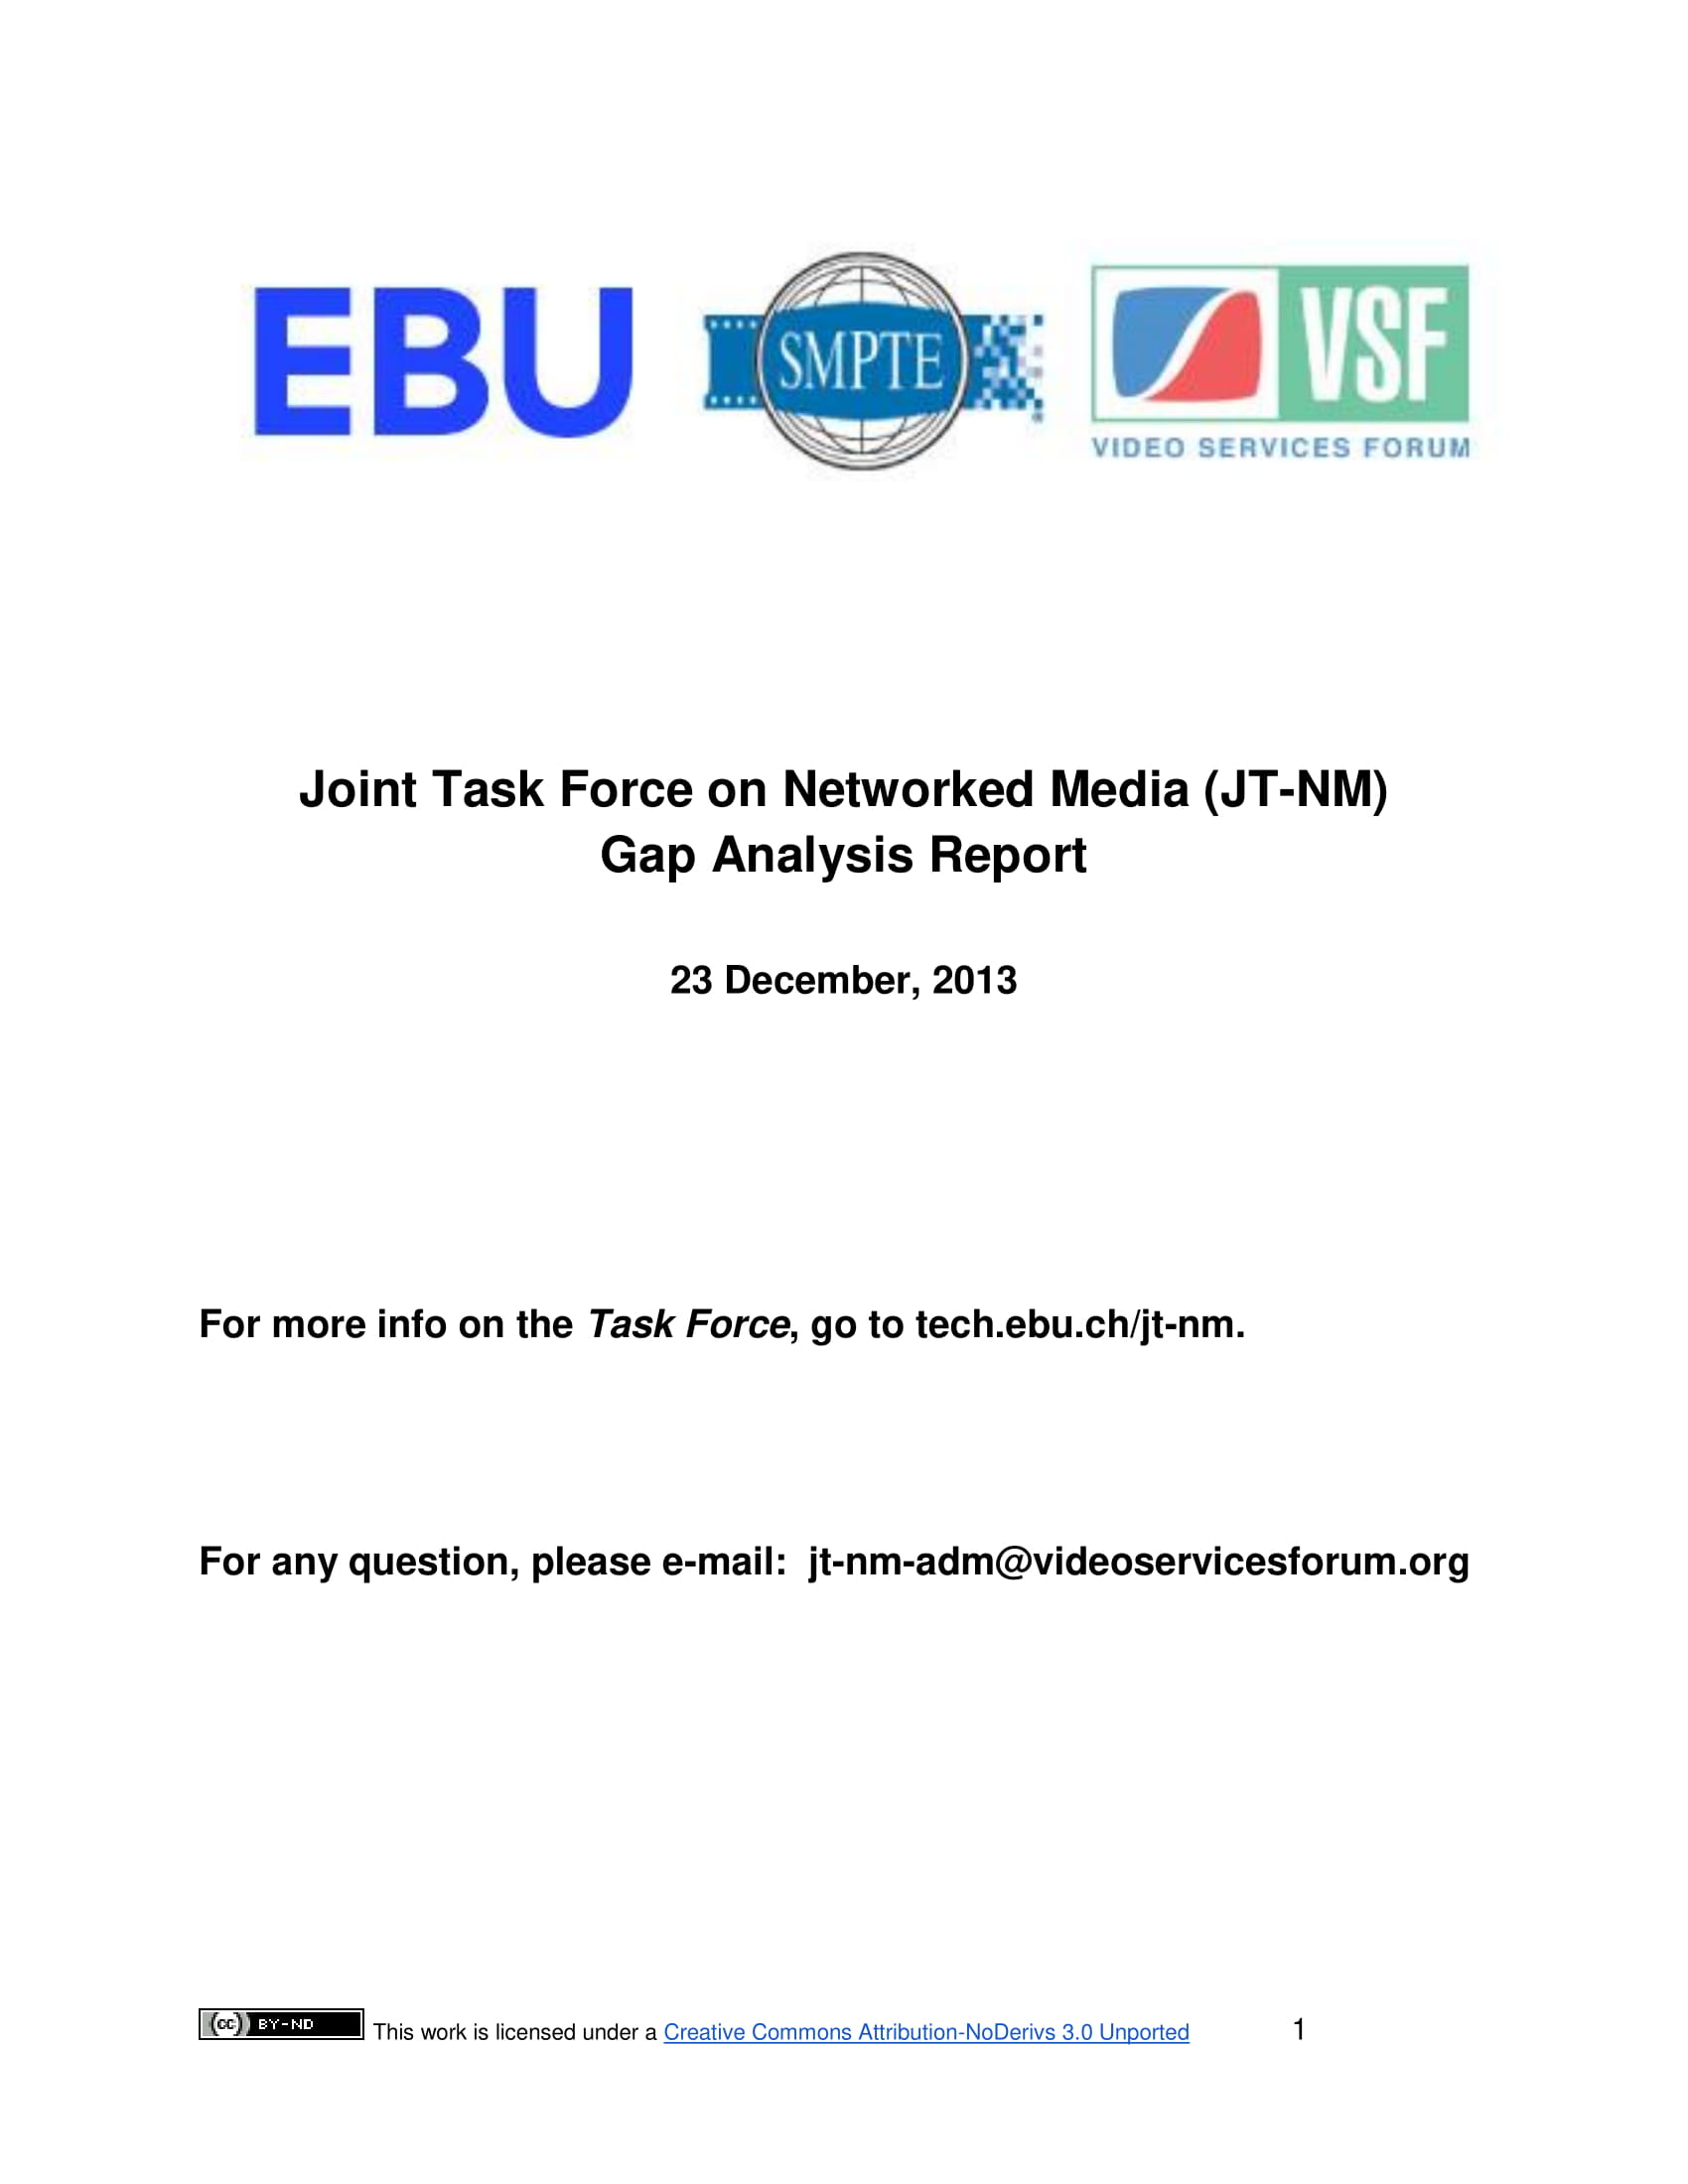 Joint Tasked Force And Network Media Gap Analysis Report Example